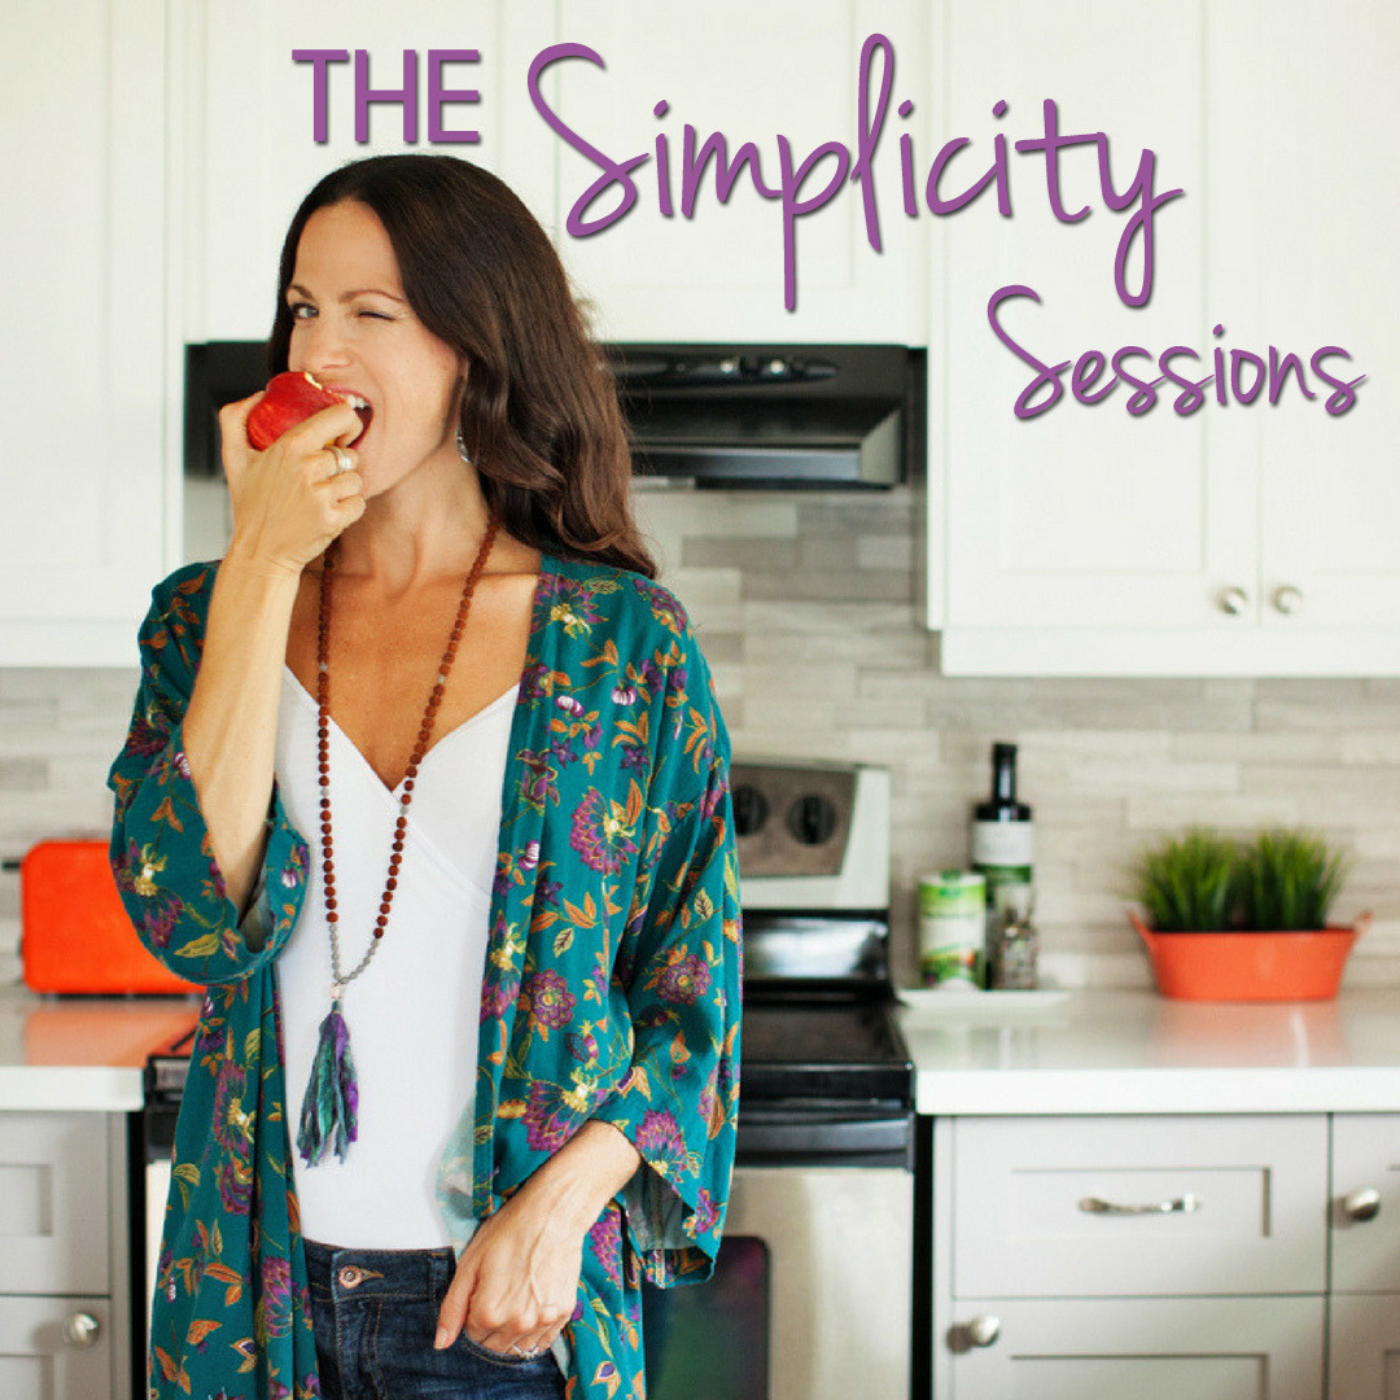 The Simplicity Sessions